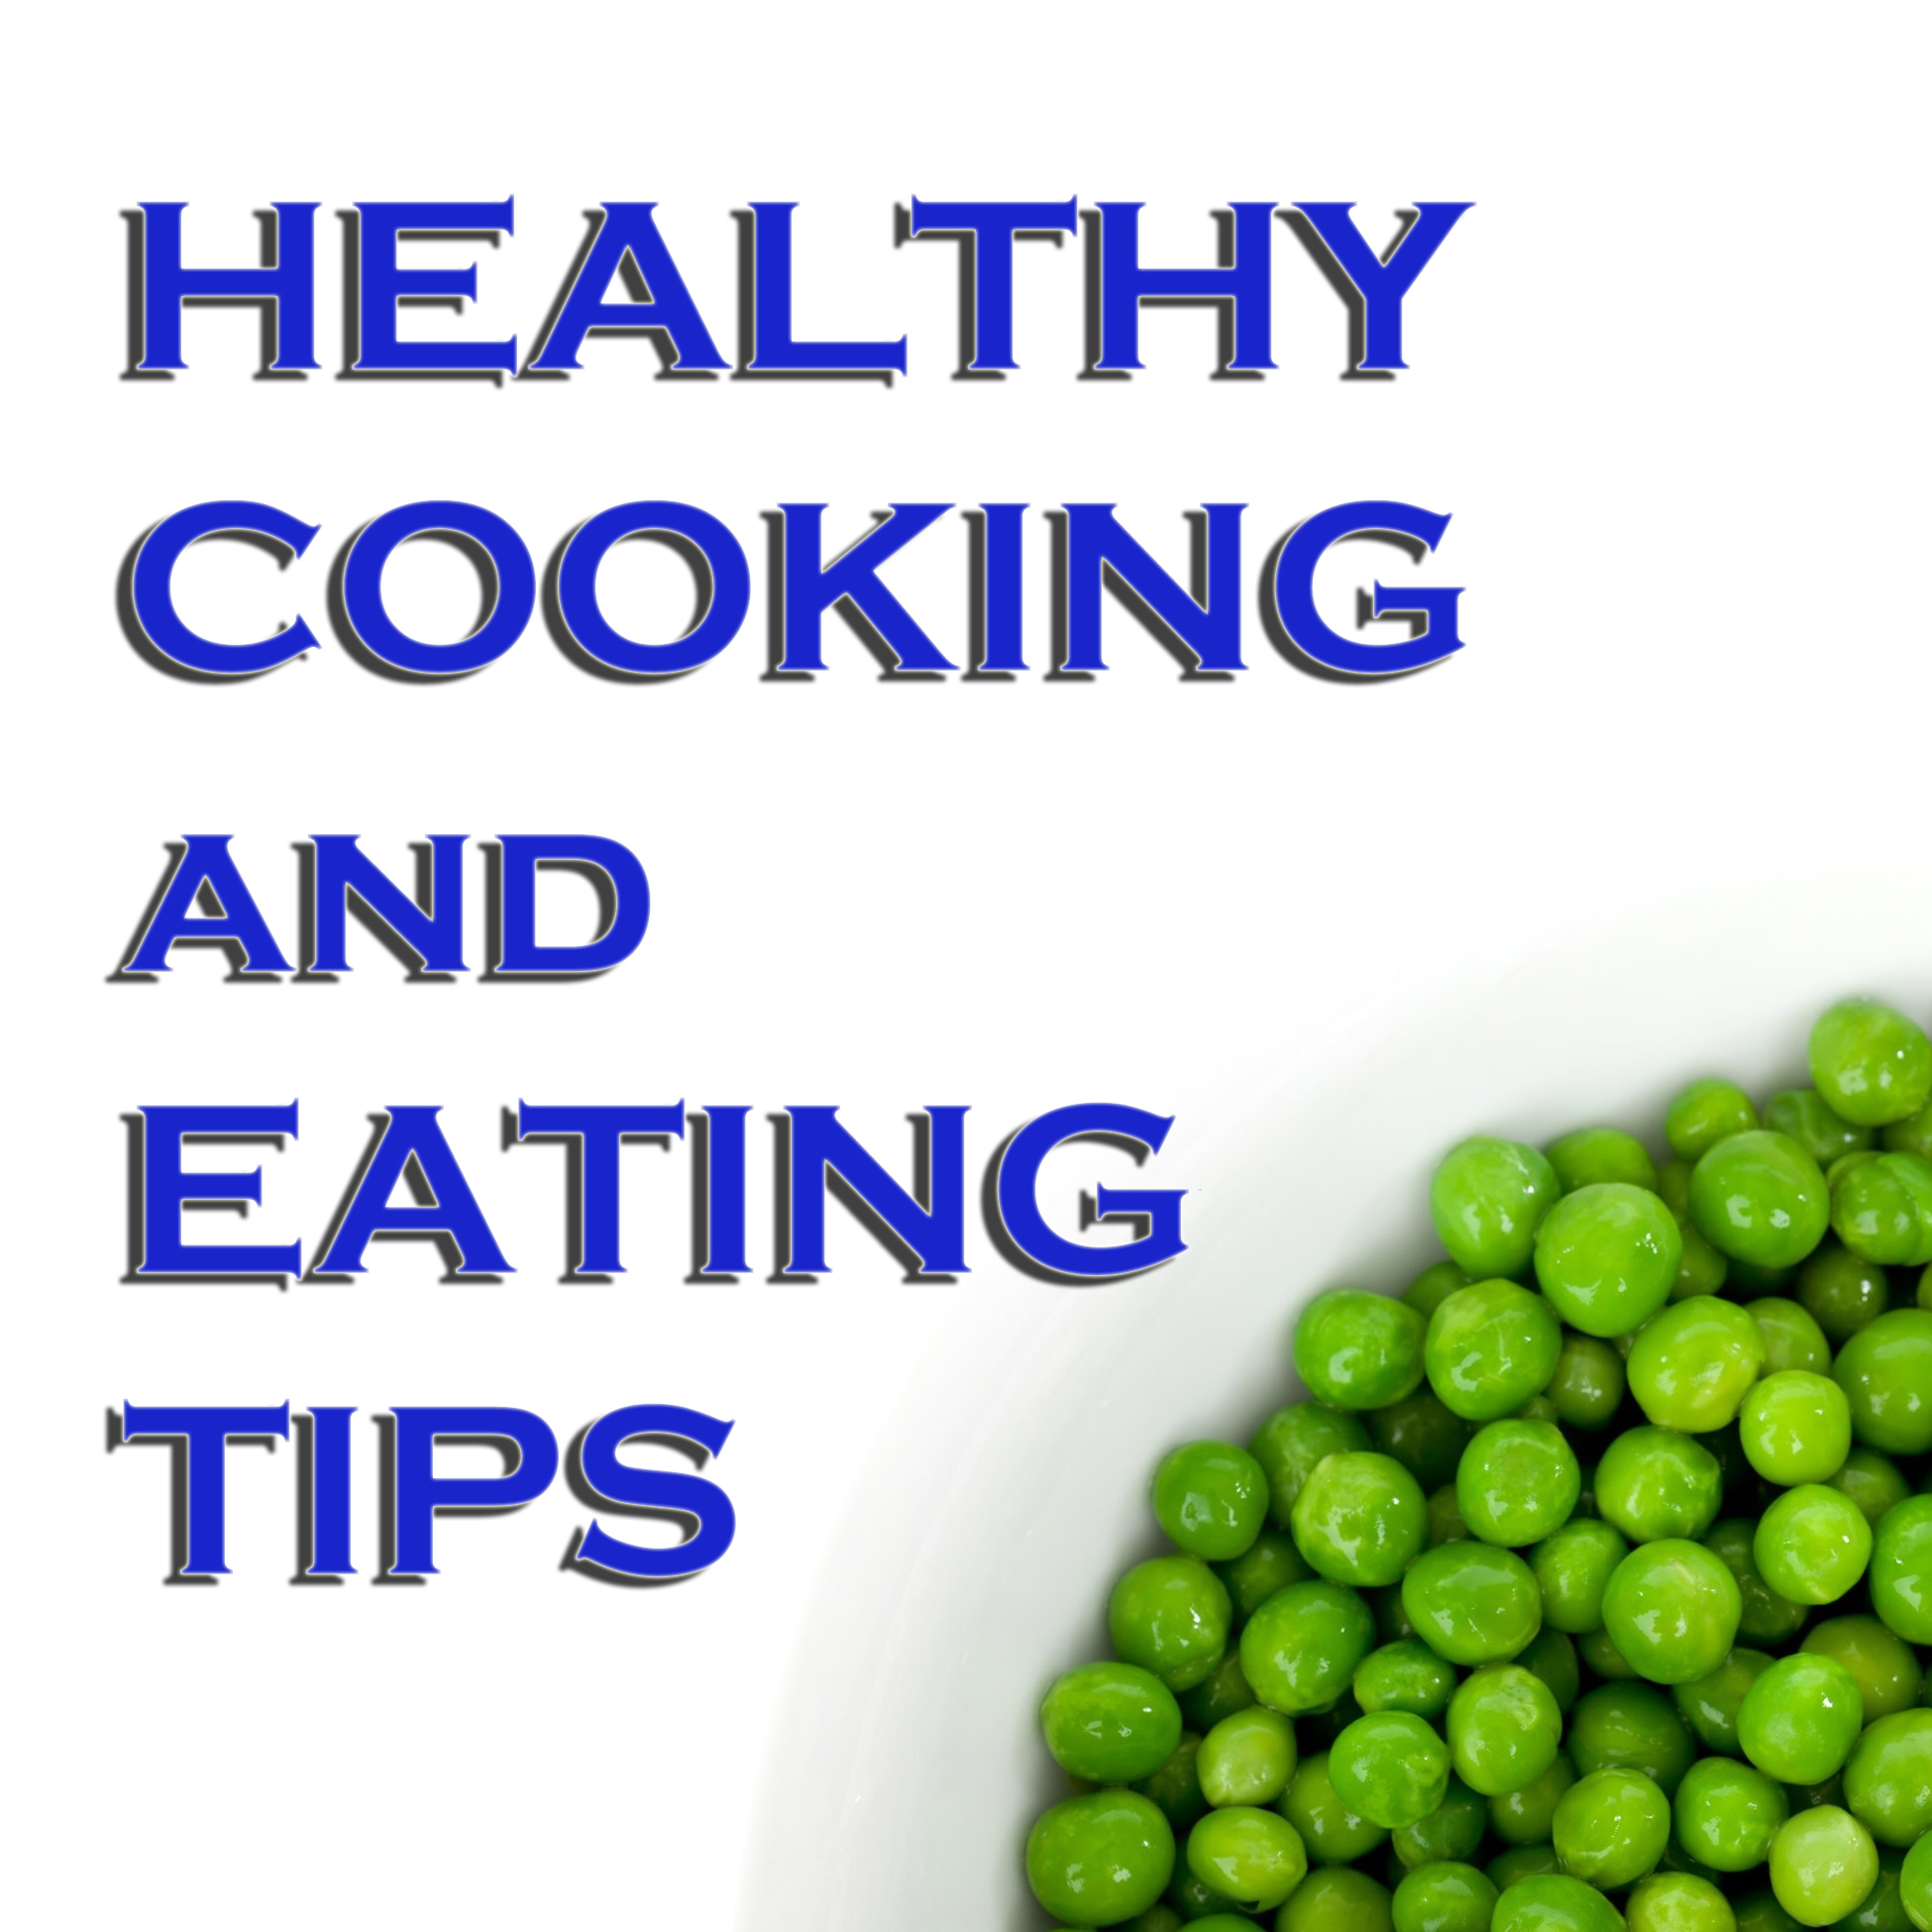 Healthy Recipes Cooking Tips: Healthy Cooking & Eating Tips